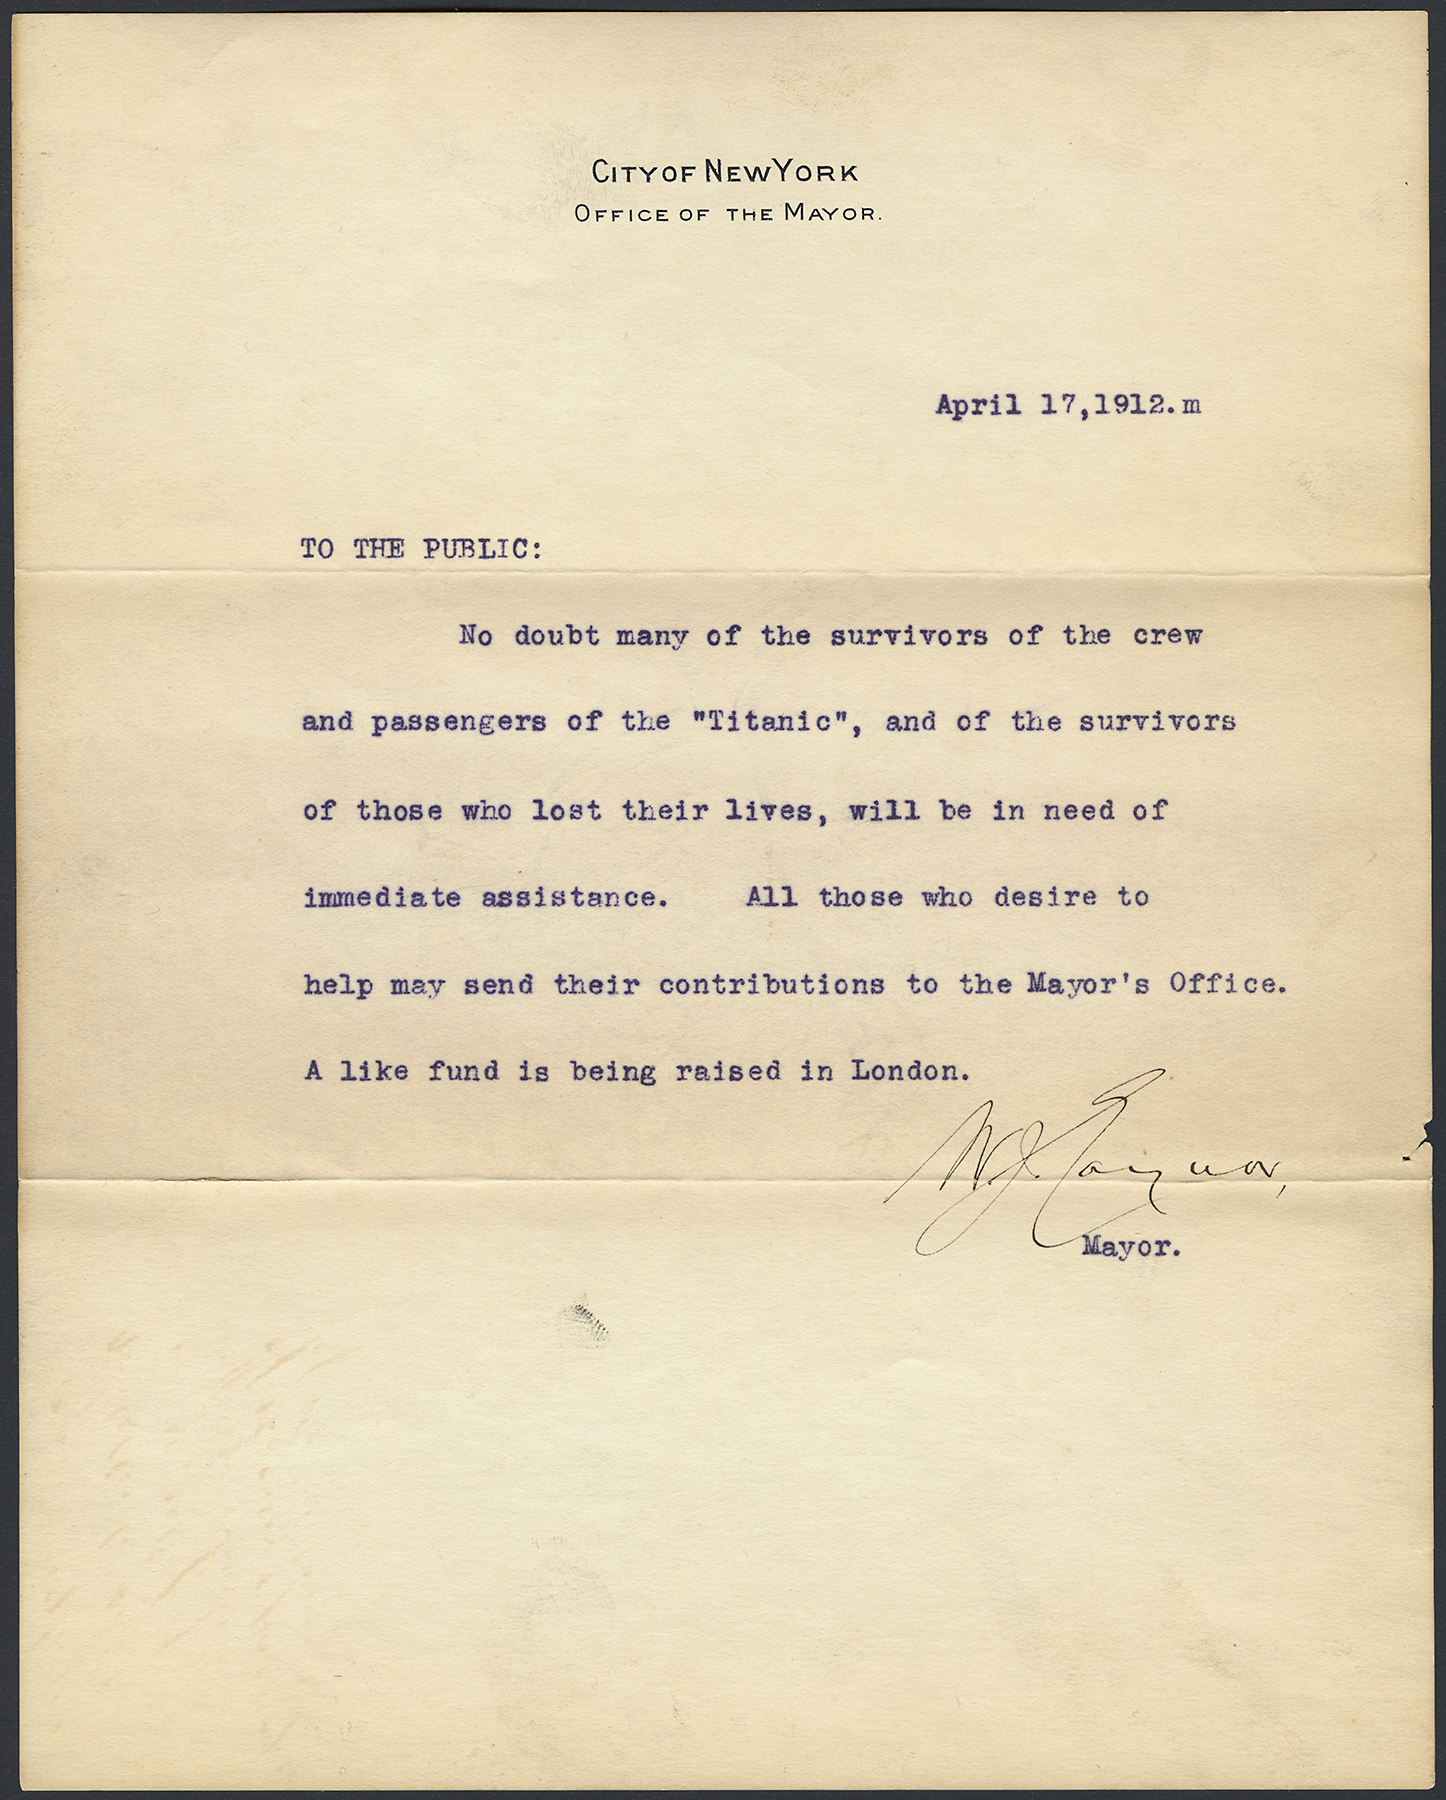 Statement form Mayor William J. Gaynor concerning the relief for Titanic survivors, April 17, 1912. Mayor Gaynor Subject Files-Titanic Disaster Relief Fund-roll 10, NYC Municipal Archives.